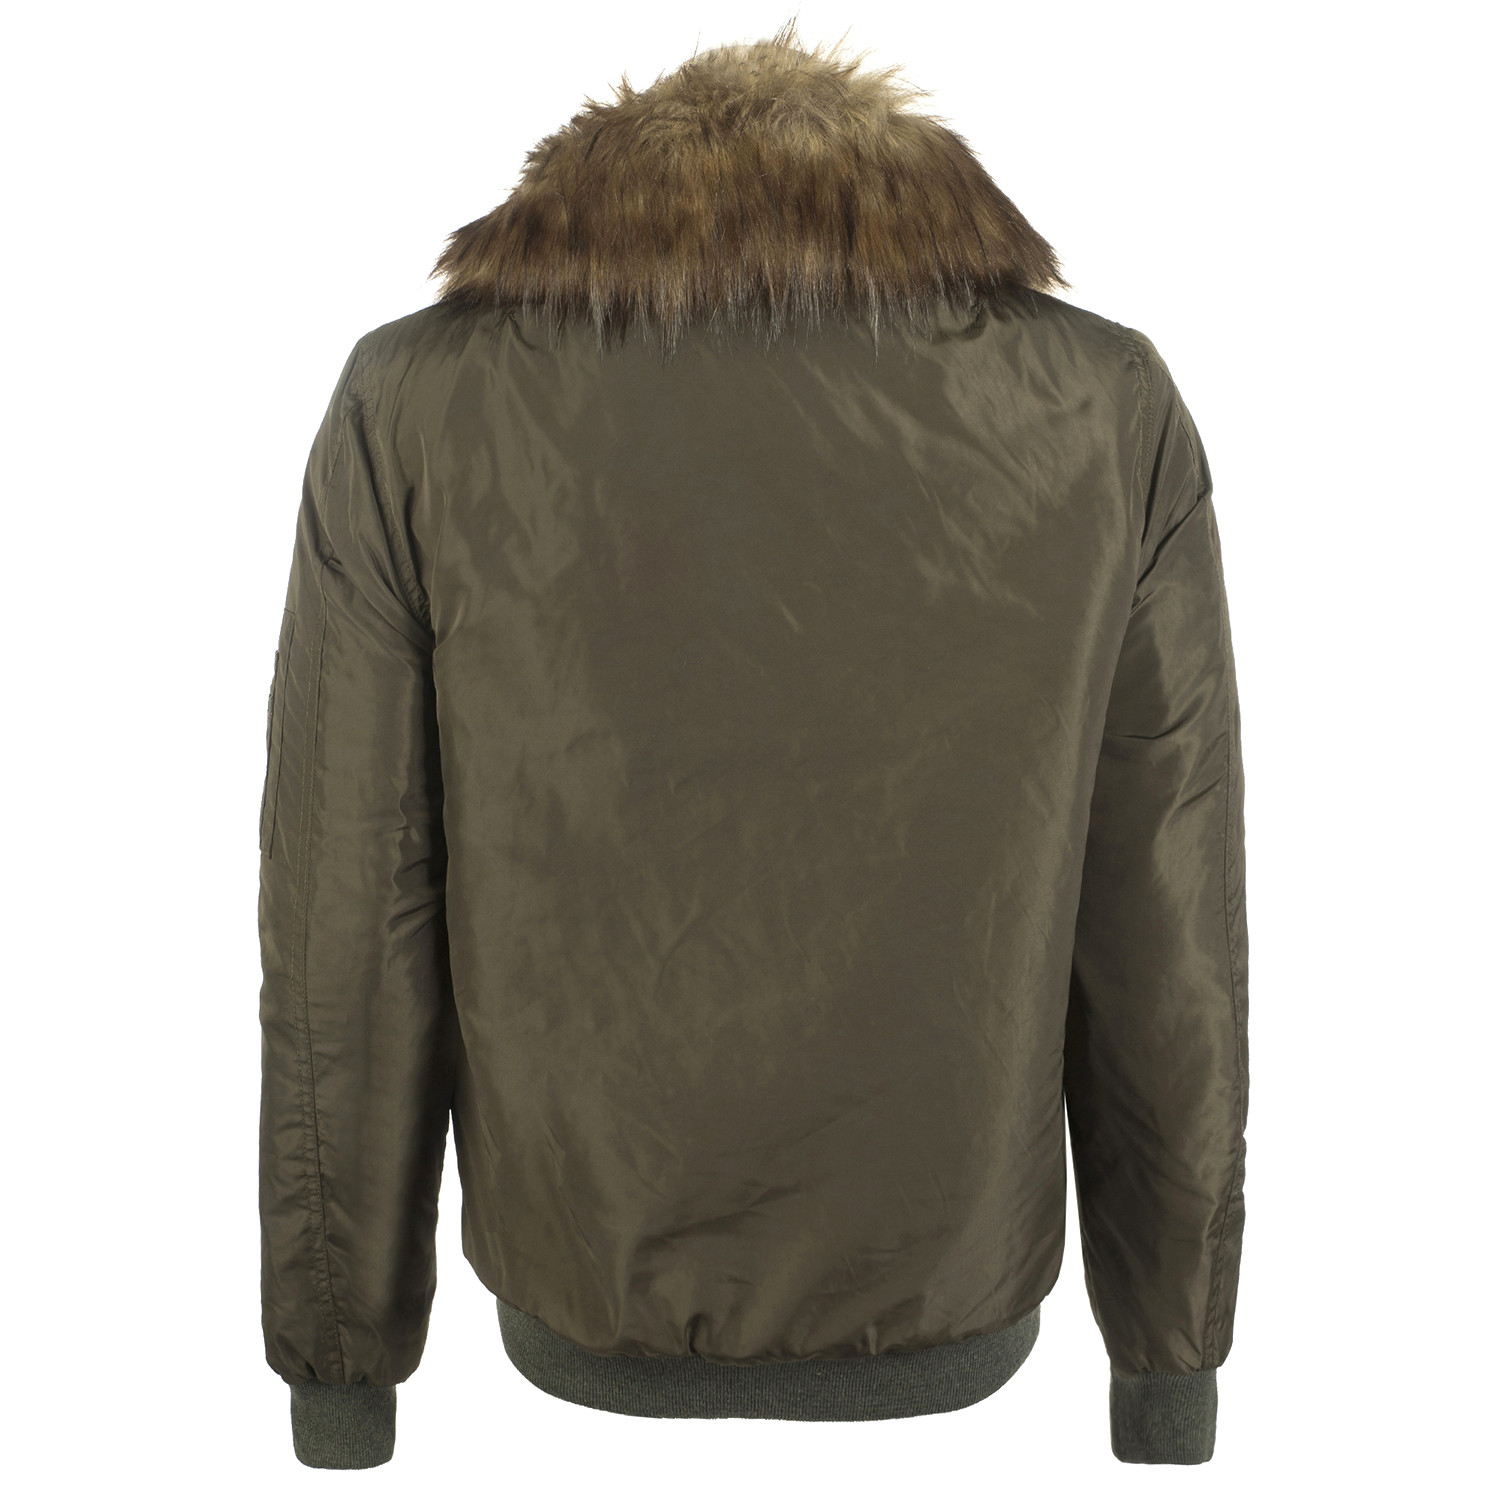 Classic, edgy and functional women's jackets at Old Khaki are a staple in any wardrobe. We accept EFT, Visa, MasterCard and eBucks. Free Delivery on orders over R in SA!